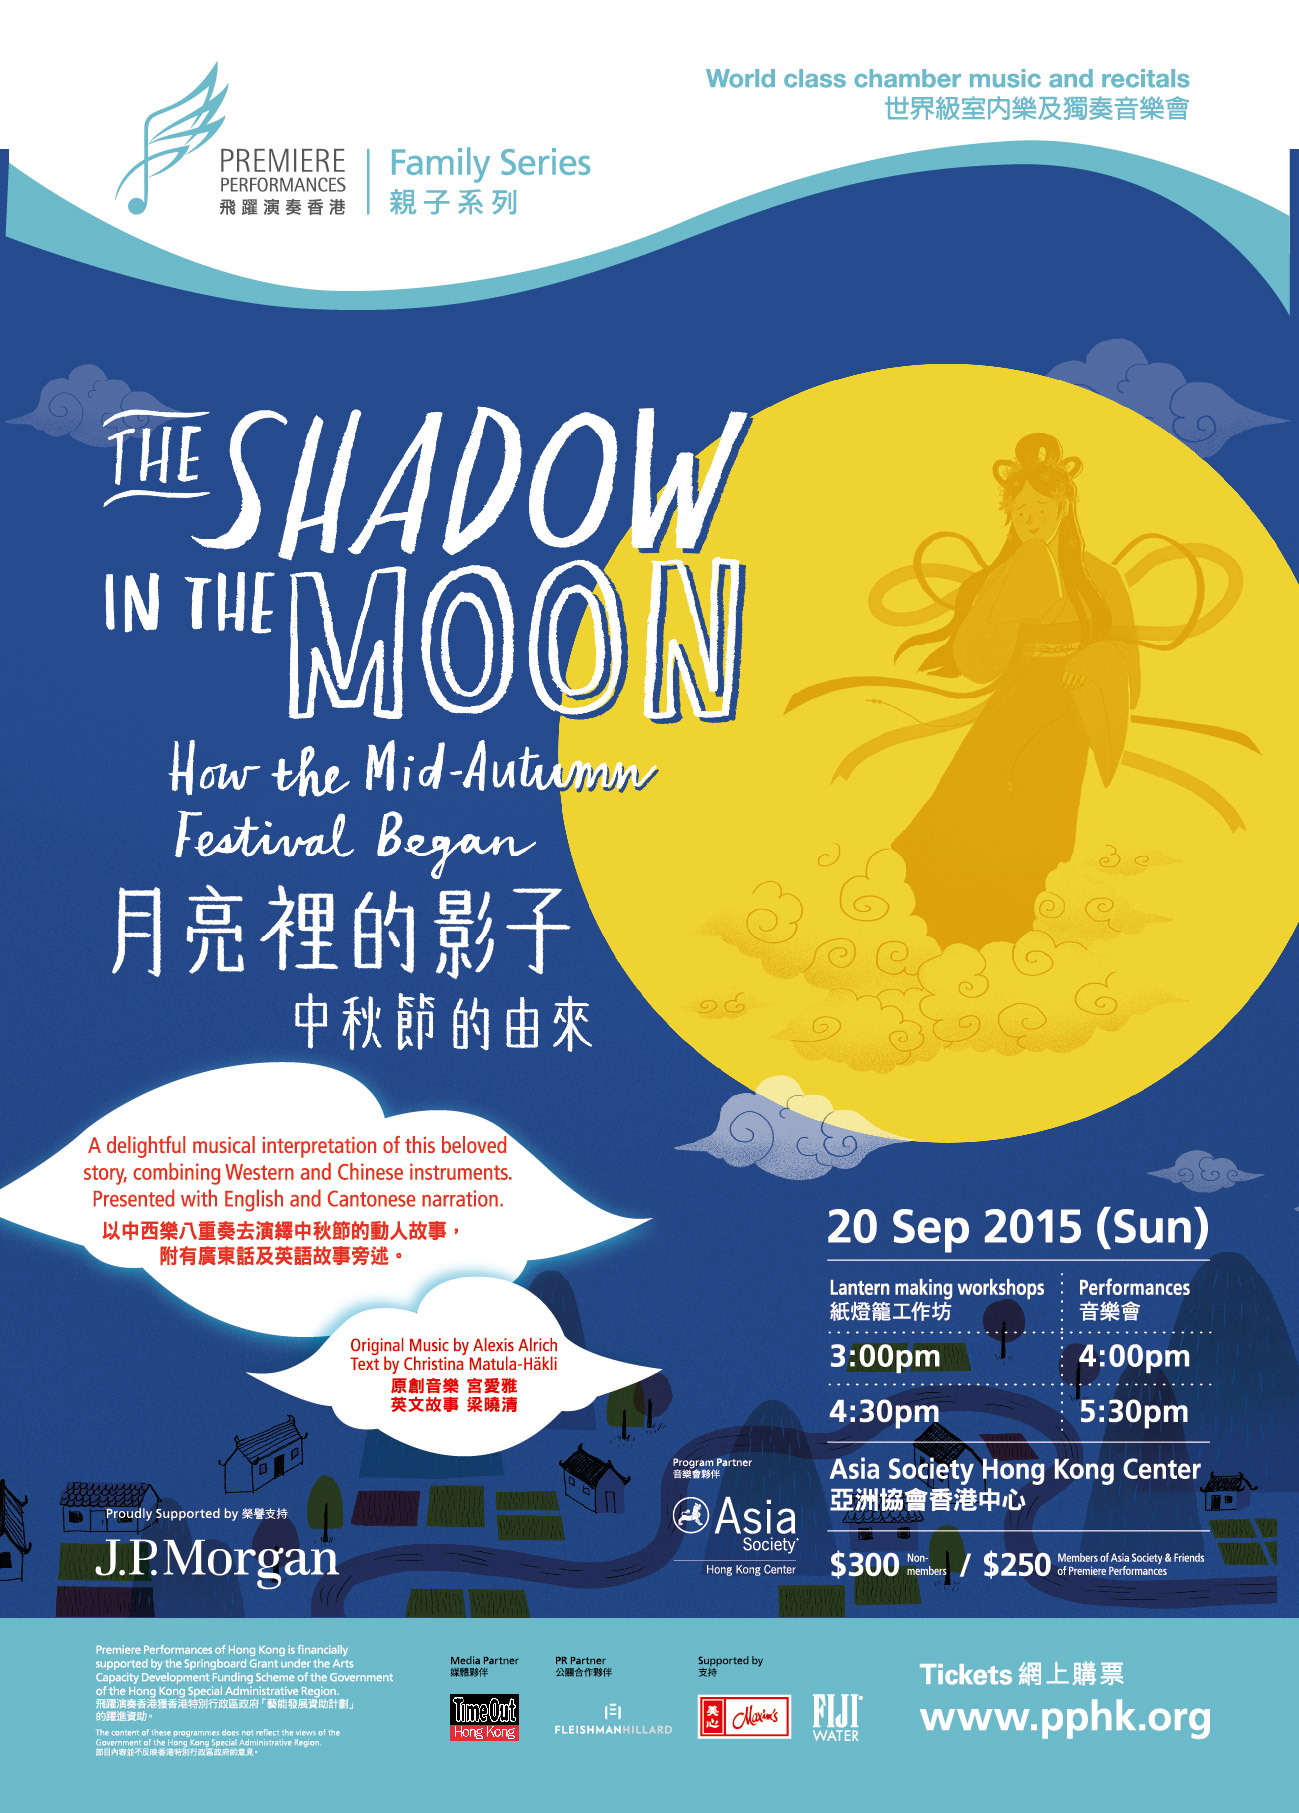 The Shadow in the Moon - Along with a narrator, the instruments featured are: piano, violin, erhu (Chinese violin), clarinet, dizi (Chinese flute), cello, guzheng (Chinese harp), and percussion.View a clip here. Poster illustration by Pearl Law.